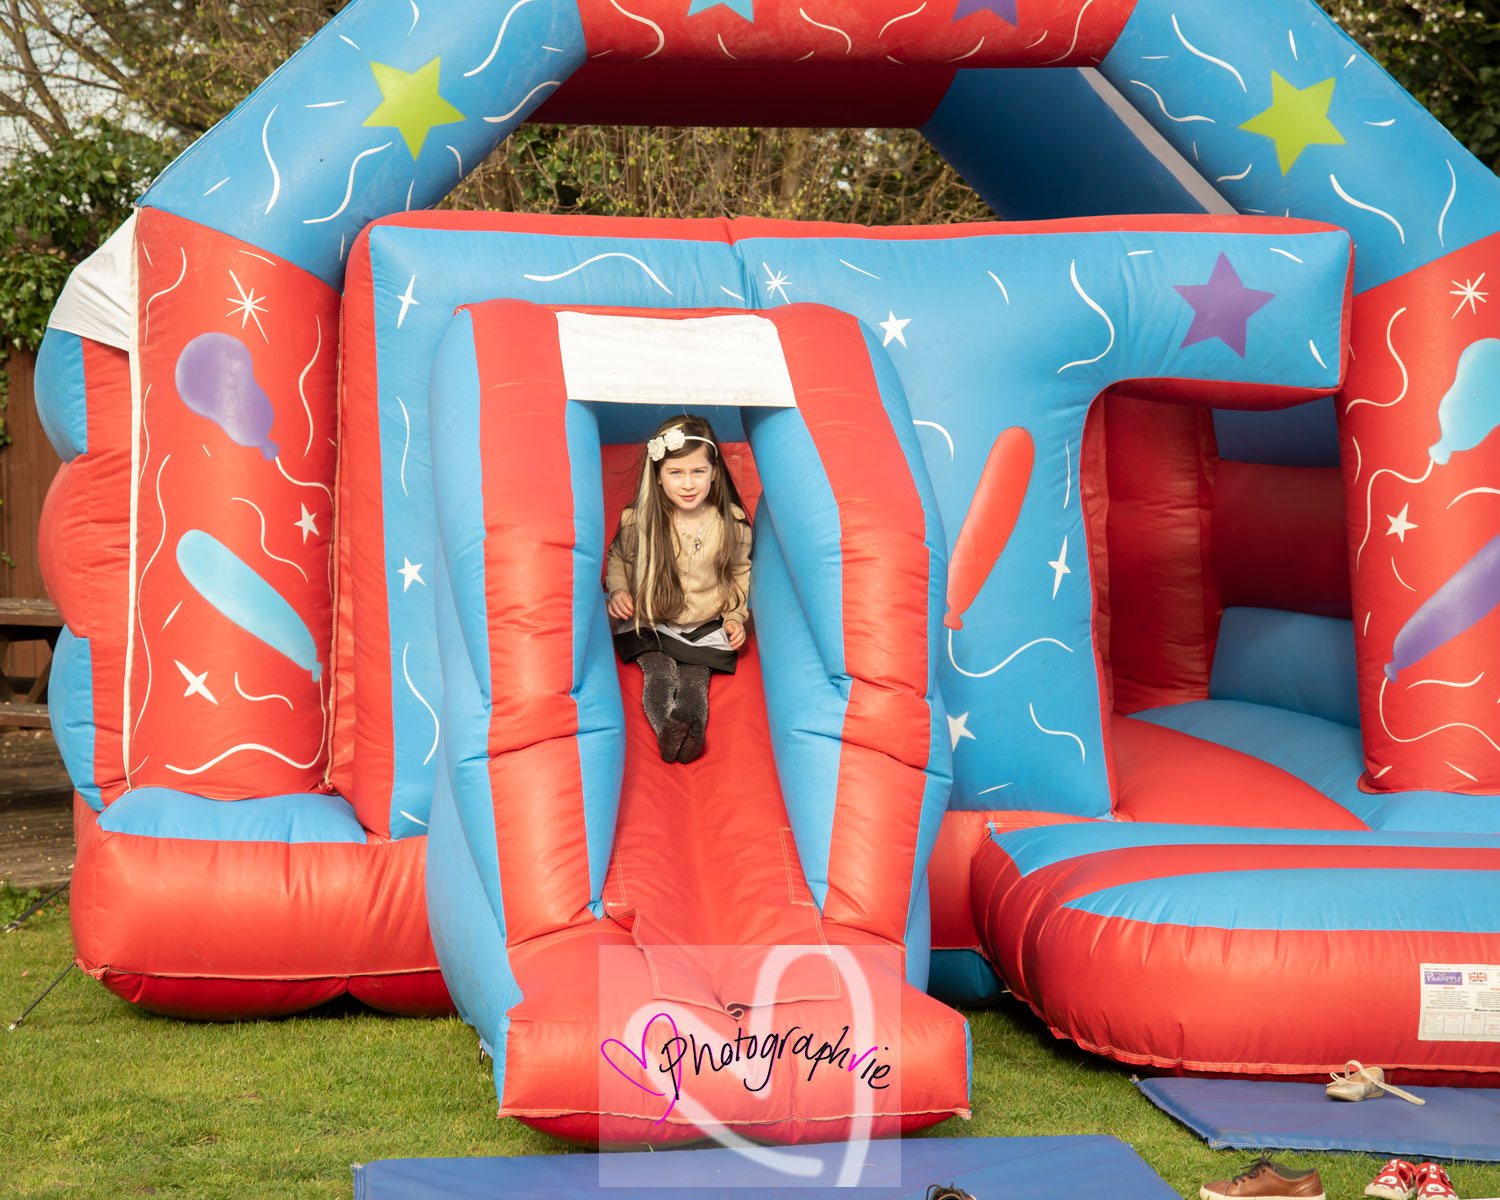 bouncy castle hire at soham wedding children playing outside photos by photographvie wedding photographer specialist